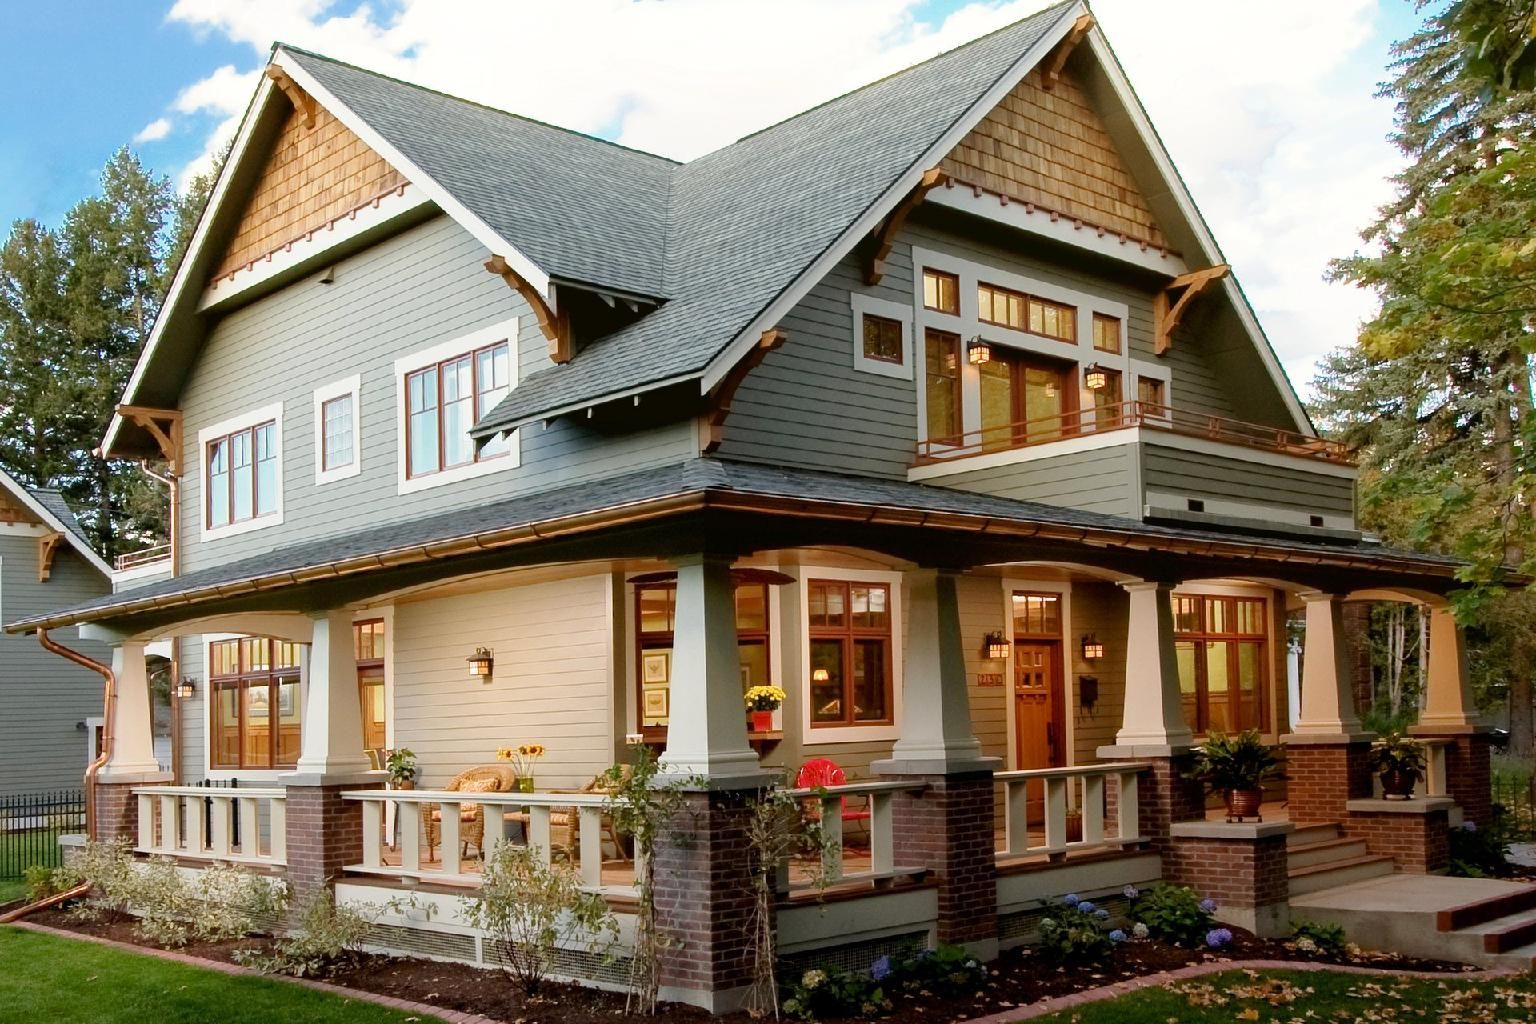 Craftsman style home with a wrap around porch and character love love love